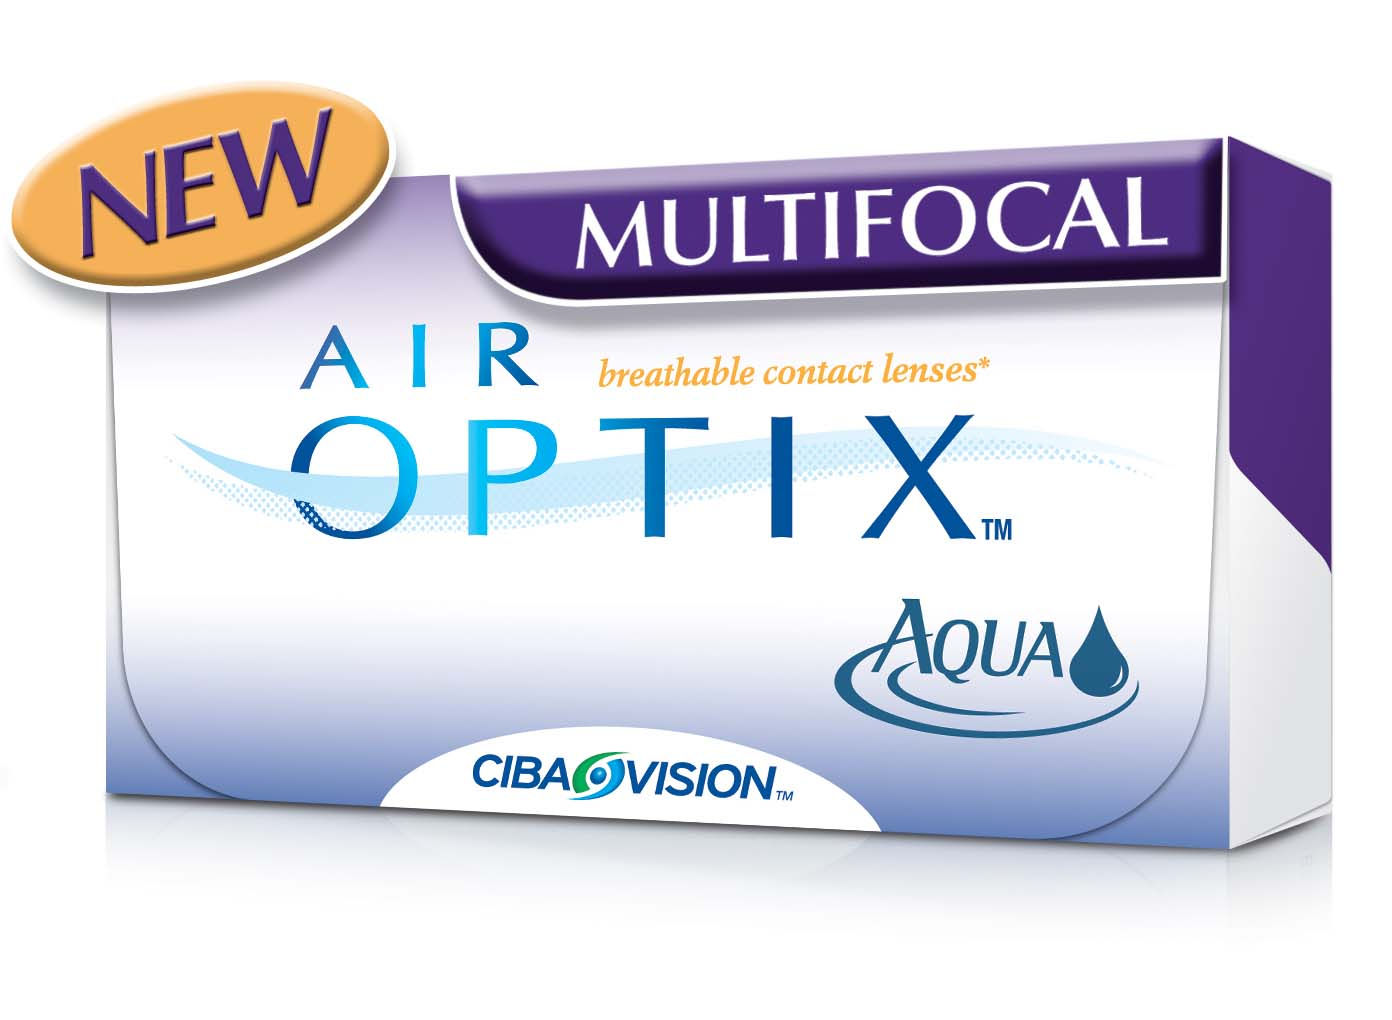 Air Optix Multi-focal